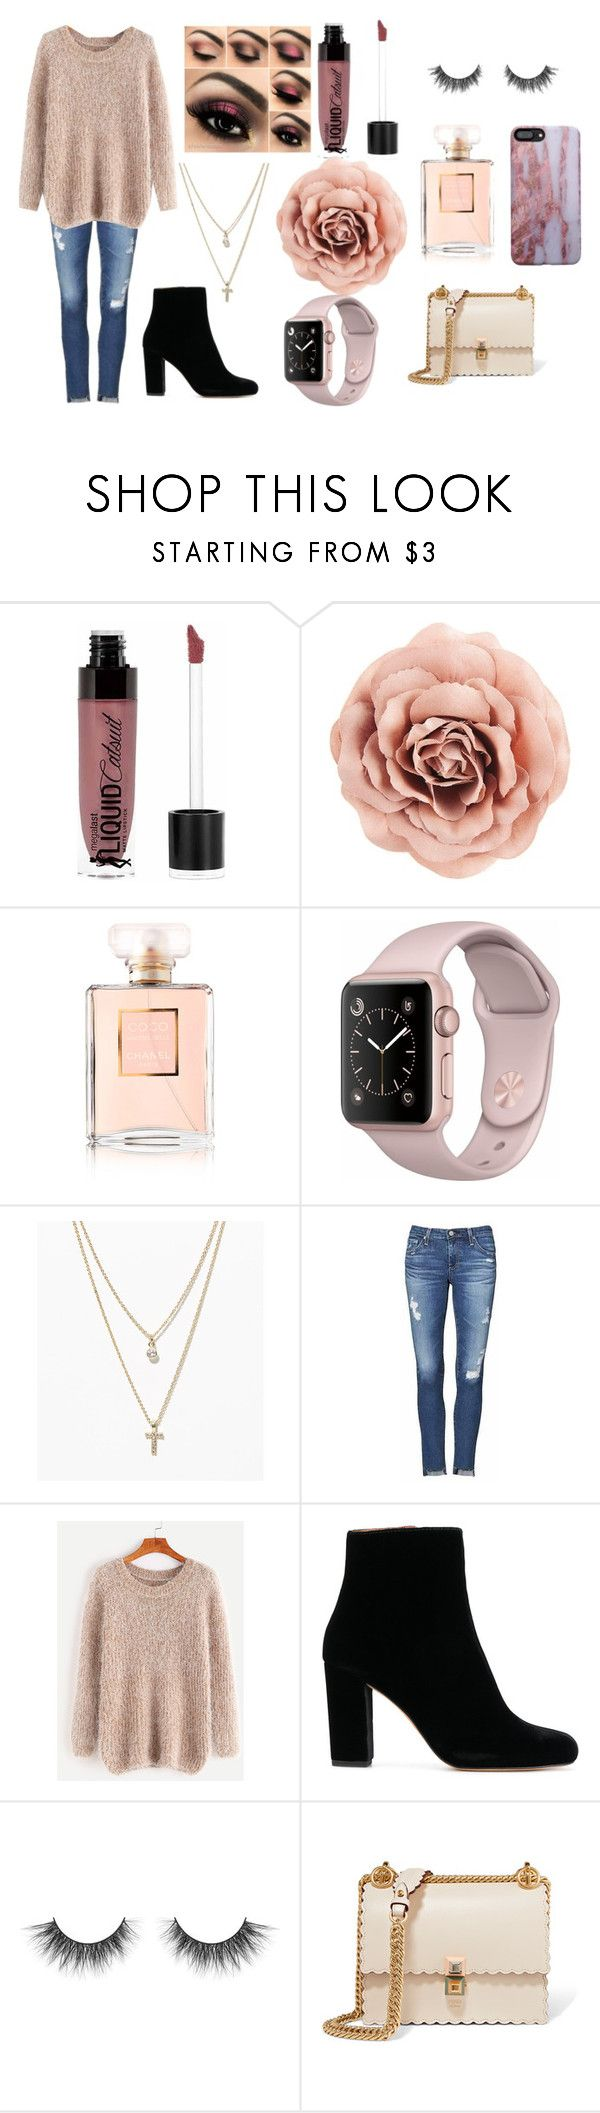 """""""pretty in pink"""" by kikiluv05 on Polyvore featuring Wet n Wild, Chanel, LOFT, AG Adriano Goldschmied and Fendi"""